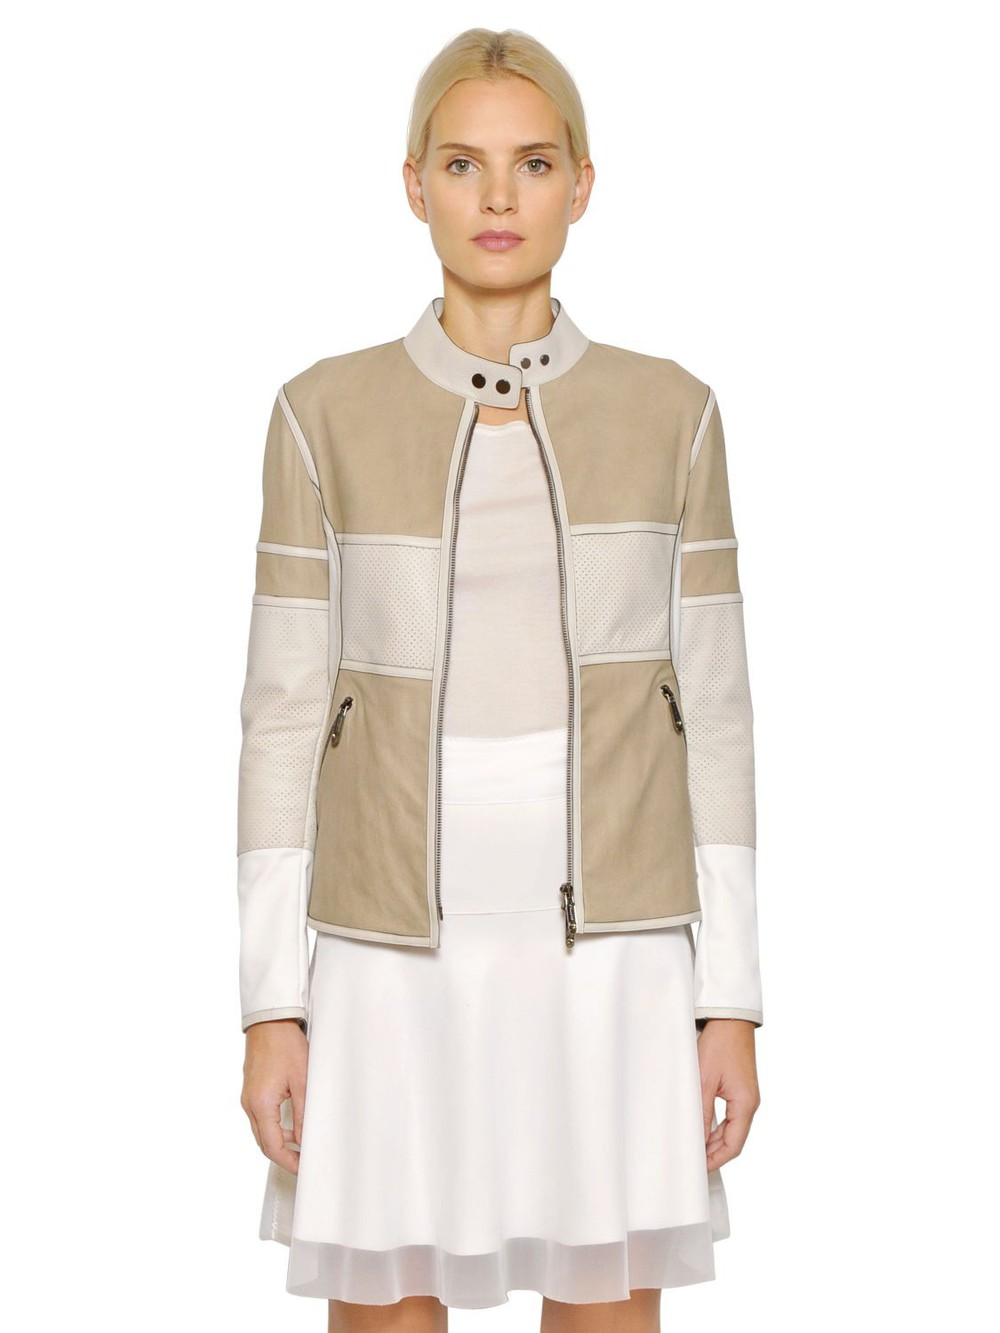 a46d9ae07a40 CALLENS Nubuck & Perforated Leather Biker Jacket in beige / white / beige